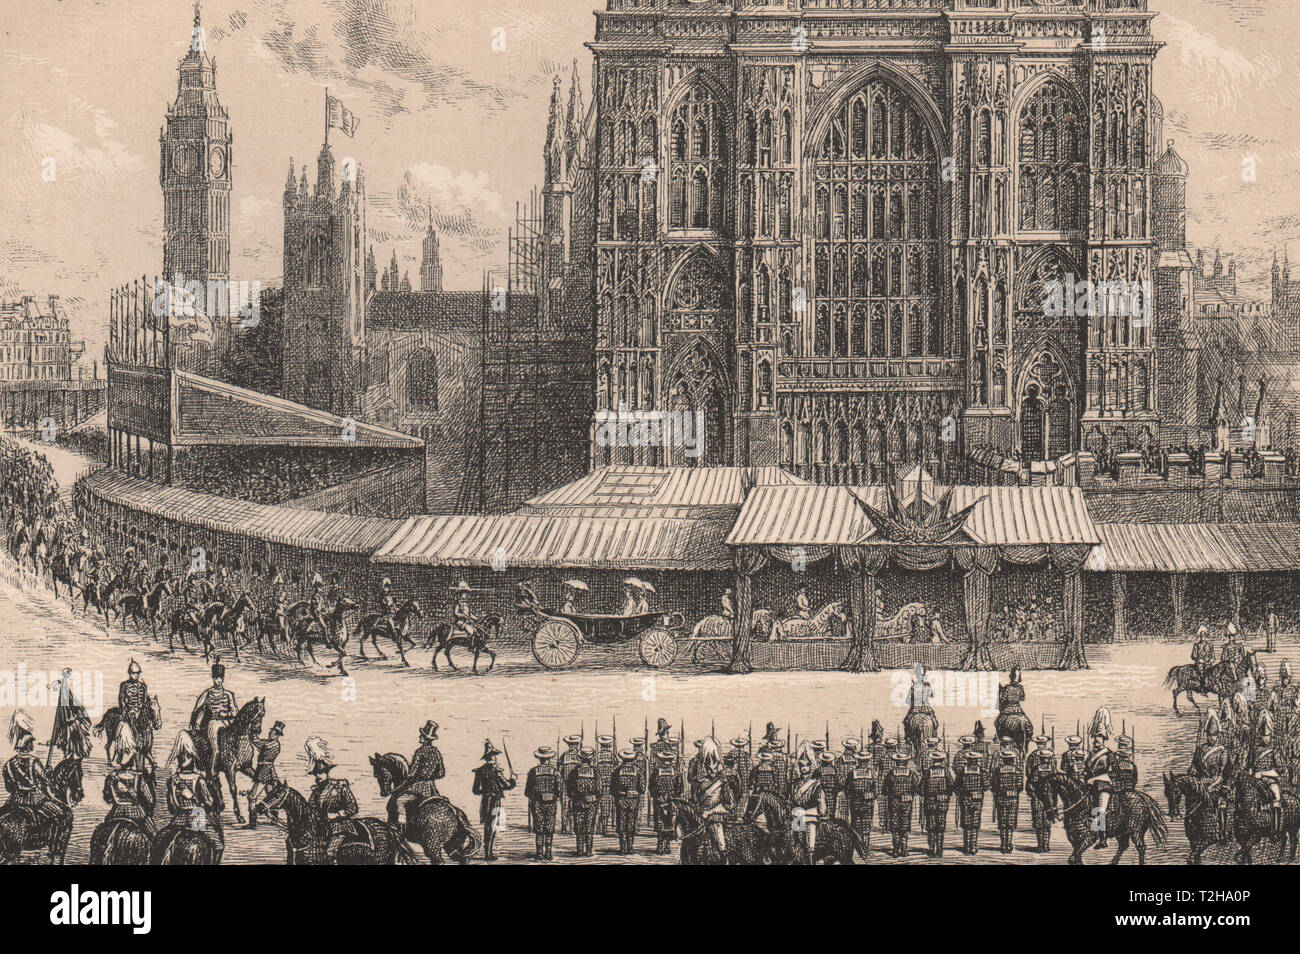 Arrival of the Queen at Westminster Abbey, 21st June, 1887. London 1890 print - Stock Image